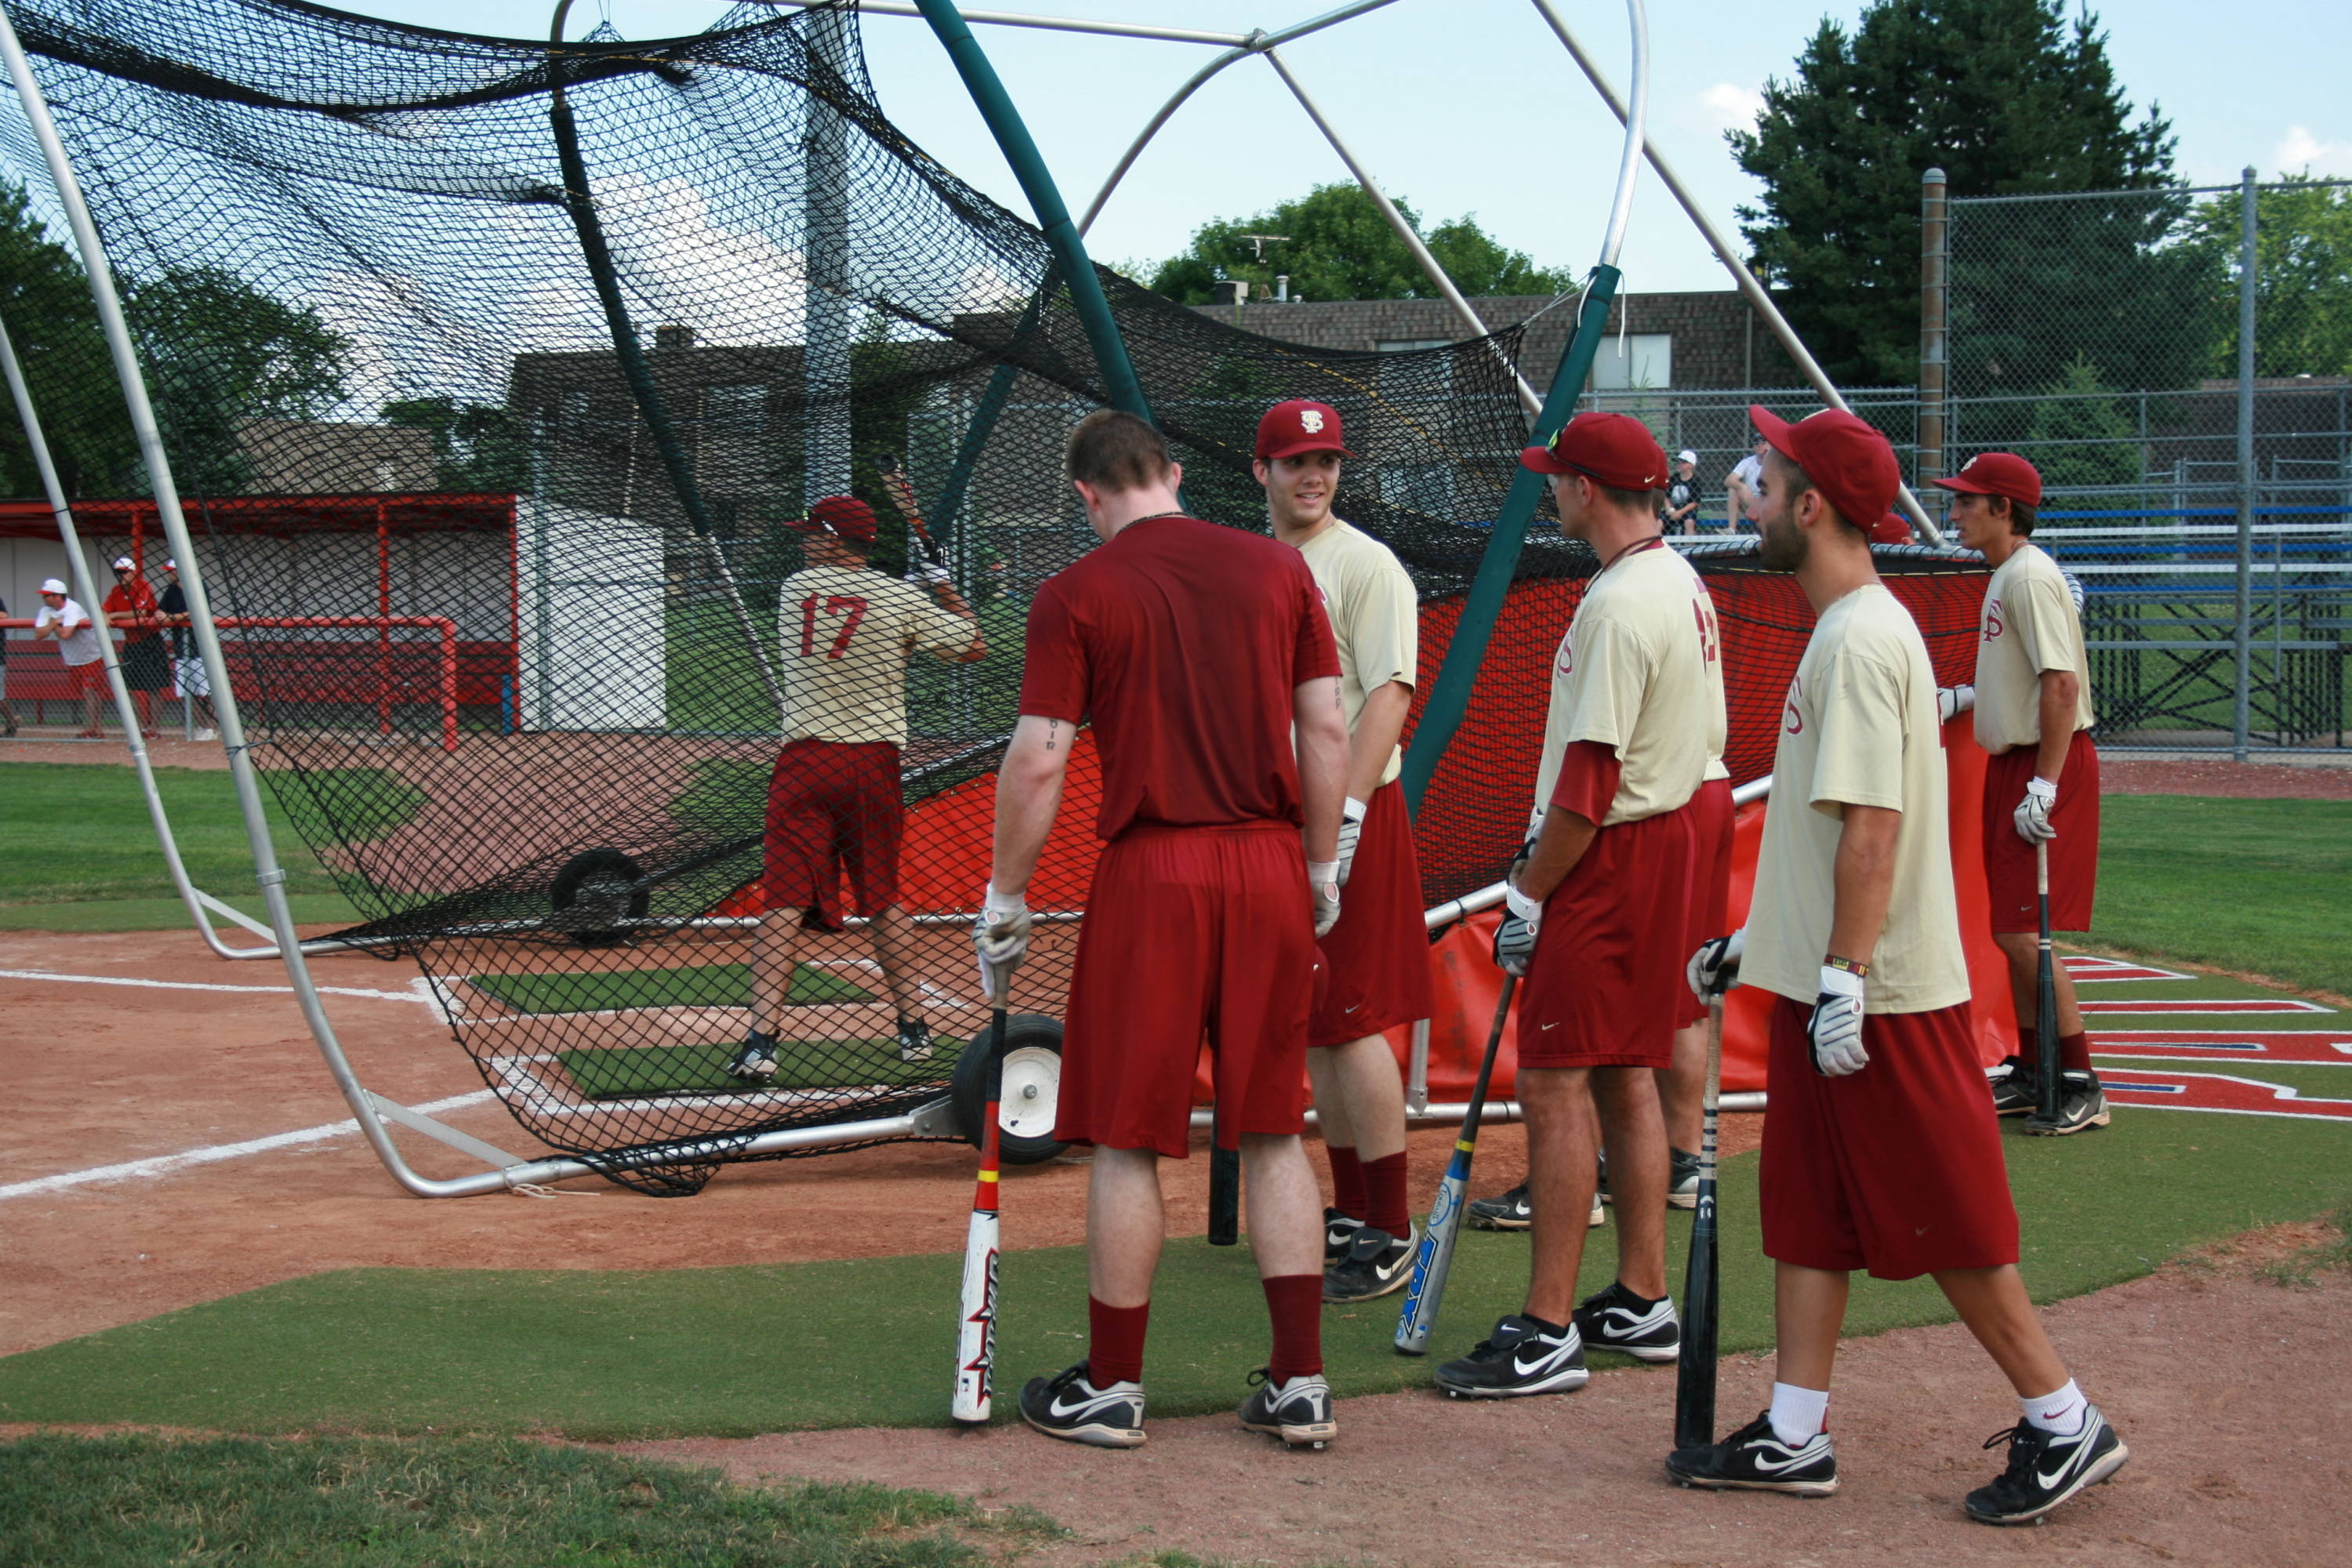 The Seminoles taking batting practice